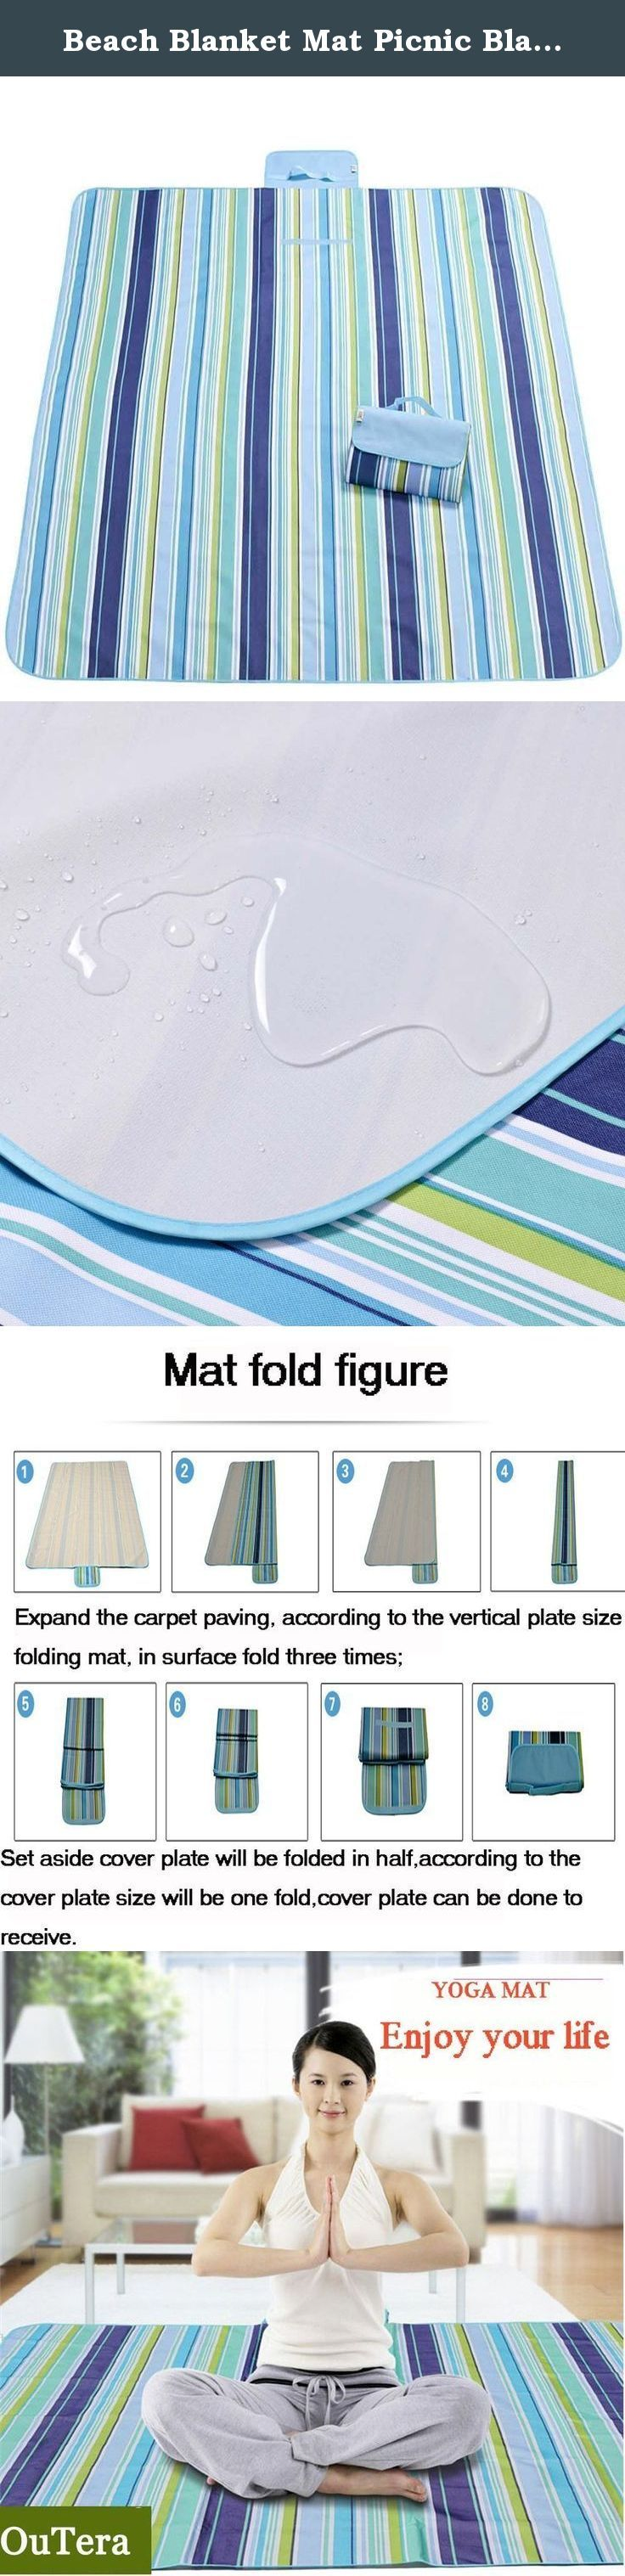 """Beach Blanket Mat Picnic Blanket Water Proof Outdoor Mat, Camping Blanket """"70x57"""" Water Resistant Top with Water & Stain Proof Bottom Large Mat Easy to Fold & Clean- Moisture-proof, Blue. Beach Blanket Mat Picnic Blanket Water Proof Outdoor Mat, Camping Blanket """"70x57"""" Water Resistant Top with Water & Stain Proof Bottom Large Mat Easy to Fold & Clean- Moisture-proof, Blue."""